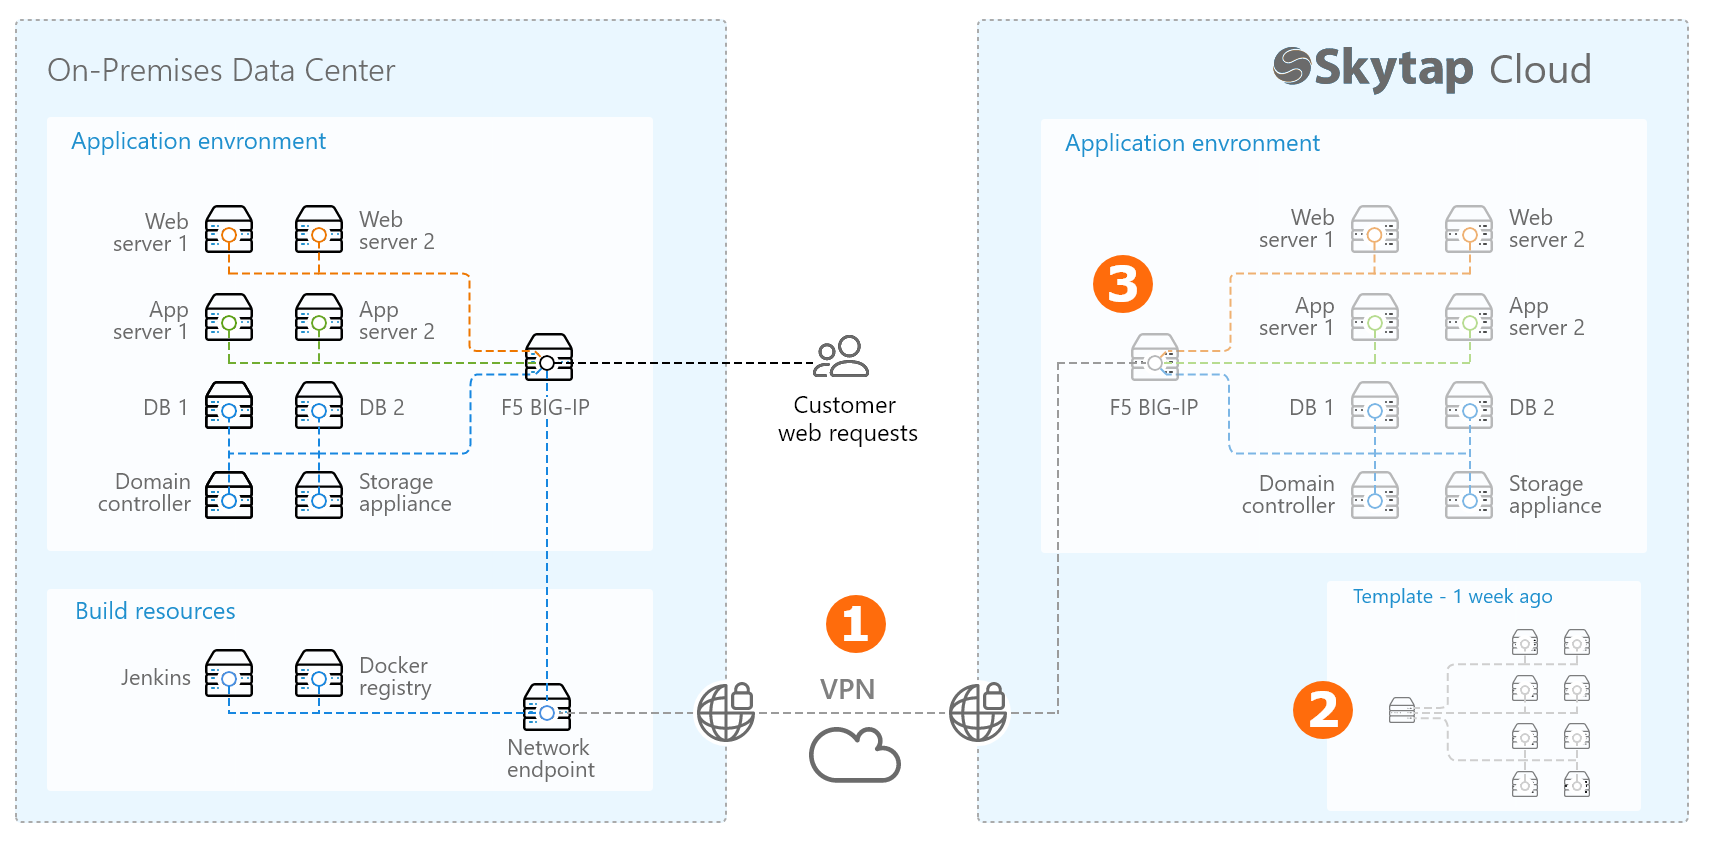 Disaster Recovery Reference Architecture  On